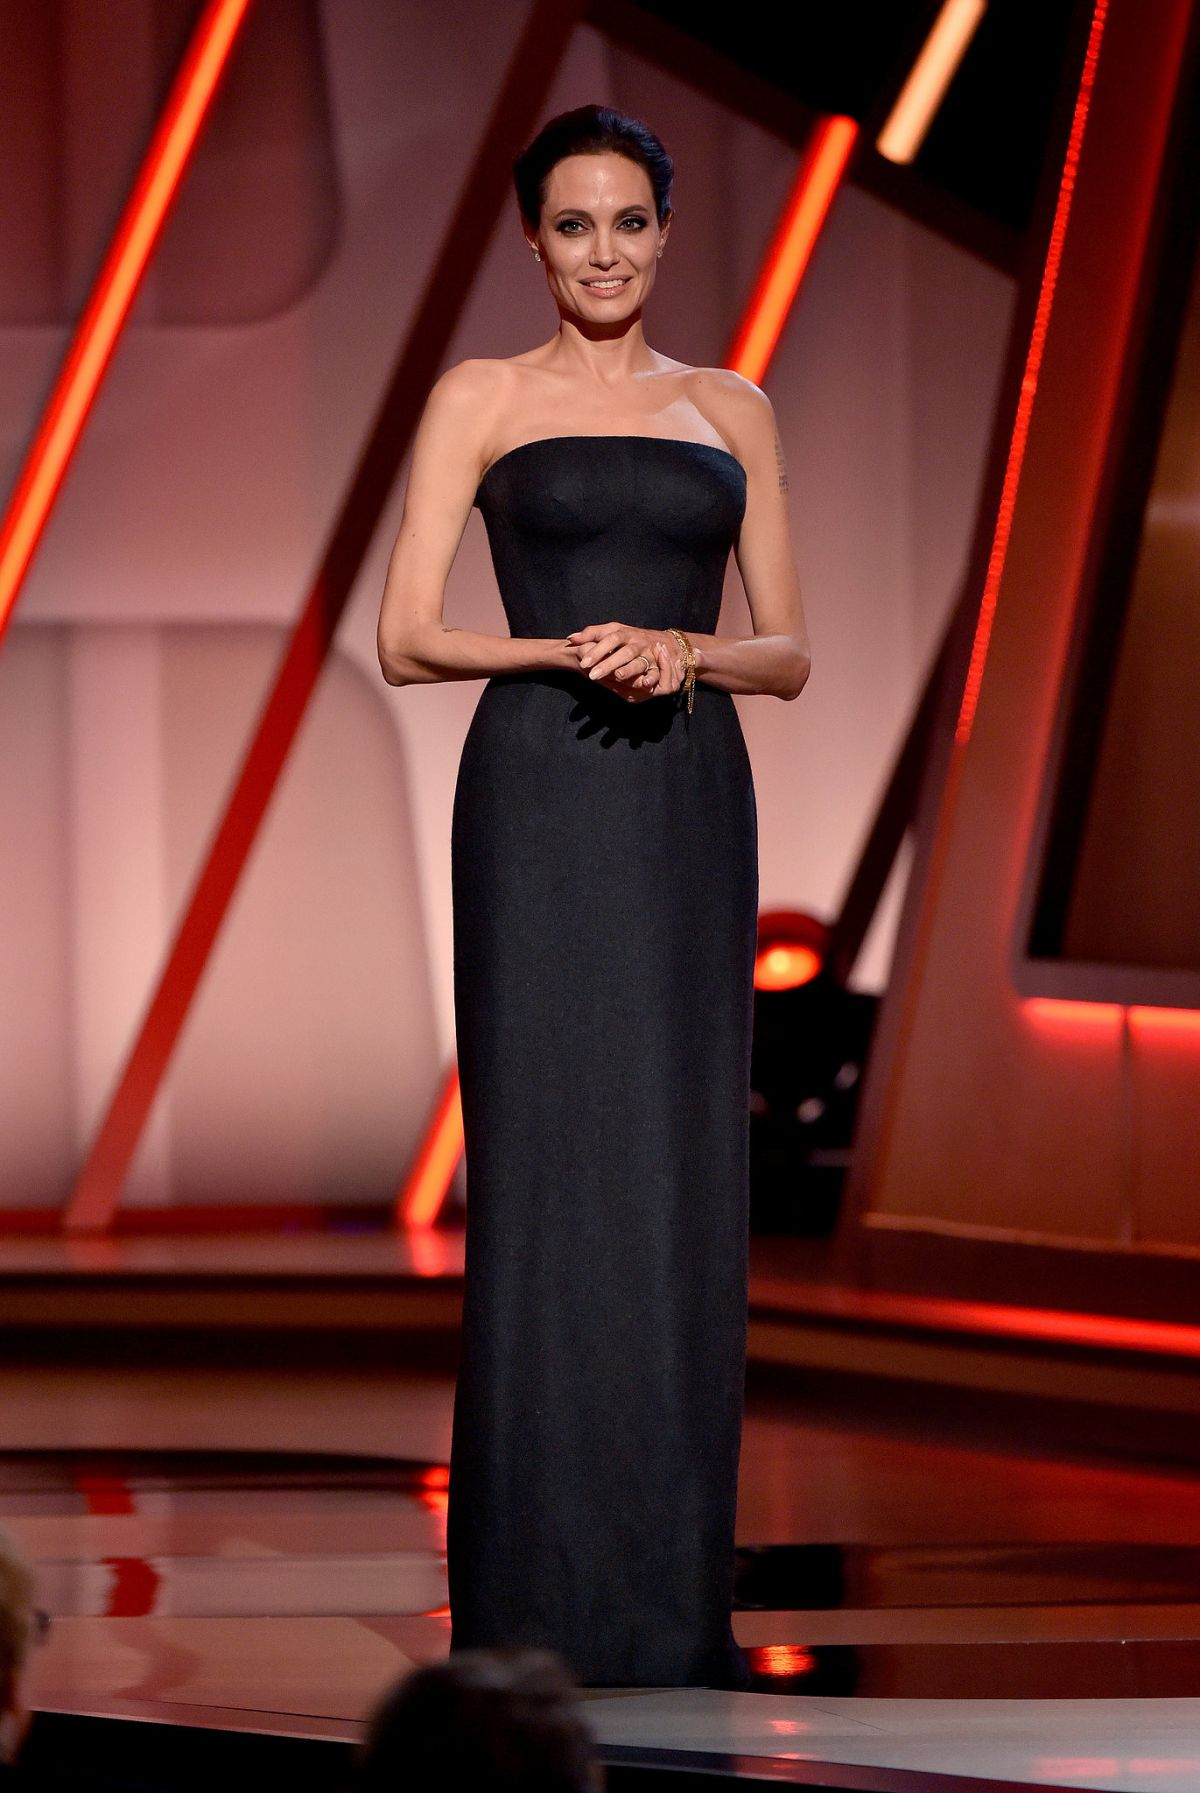 ANGELINA JOLIE at 2014 Hollywood Film Awards